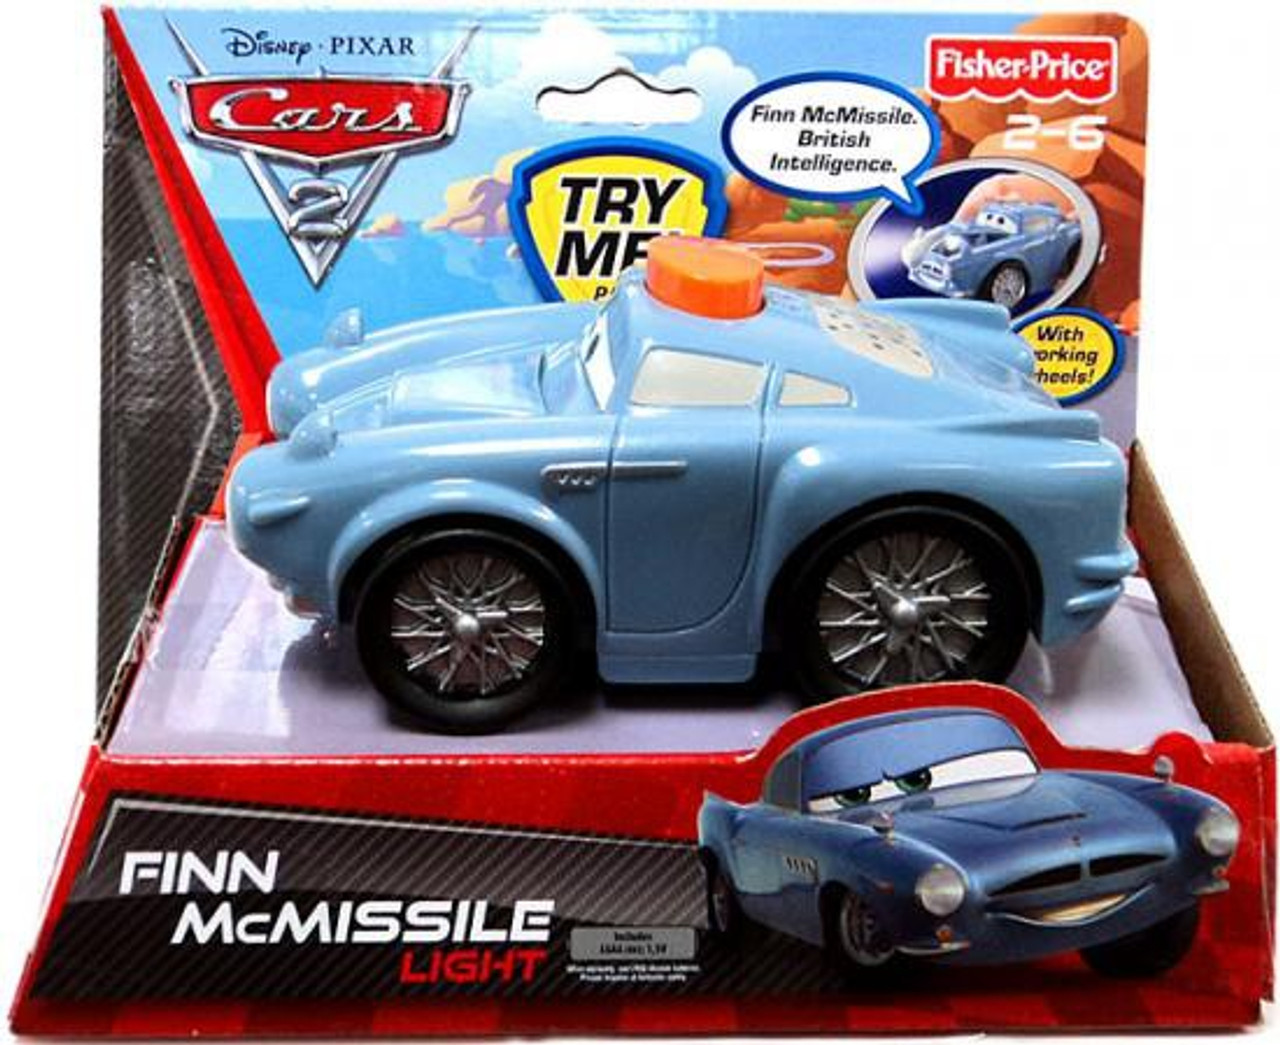 How To Paint Disney Pixar CARS 2 Finn Mcmissile Coloring Pages For ... | 1045x1280